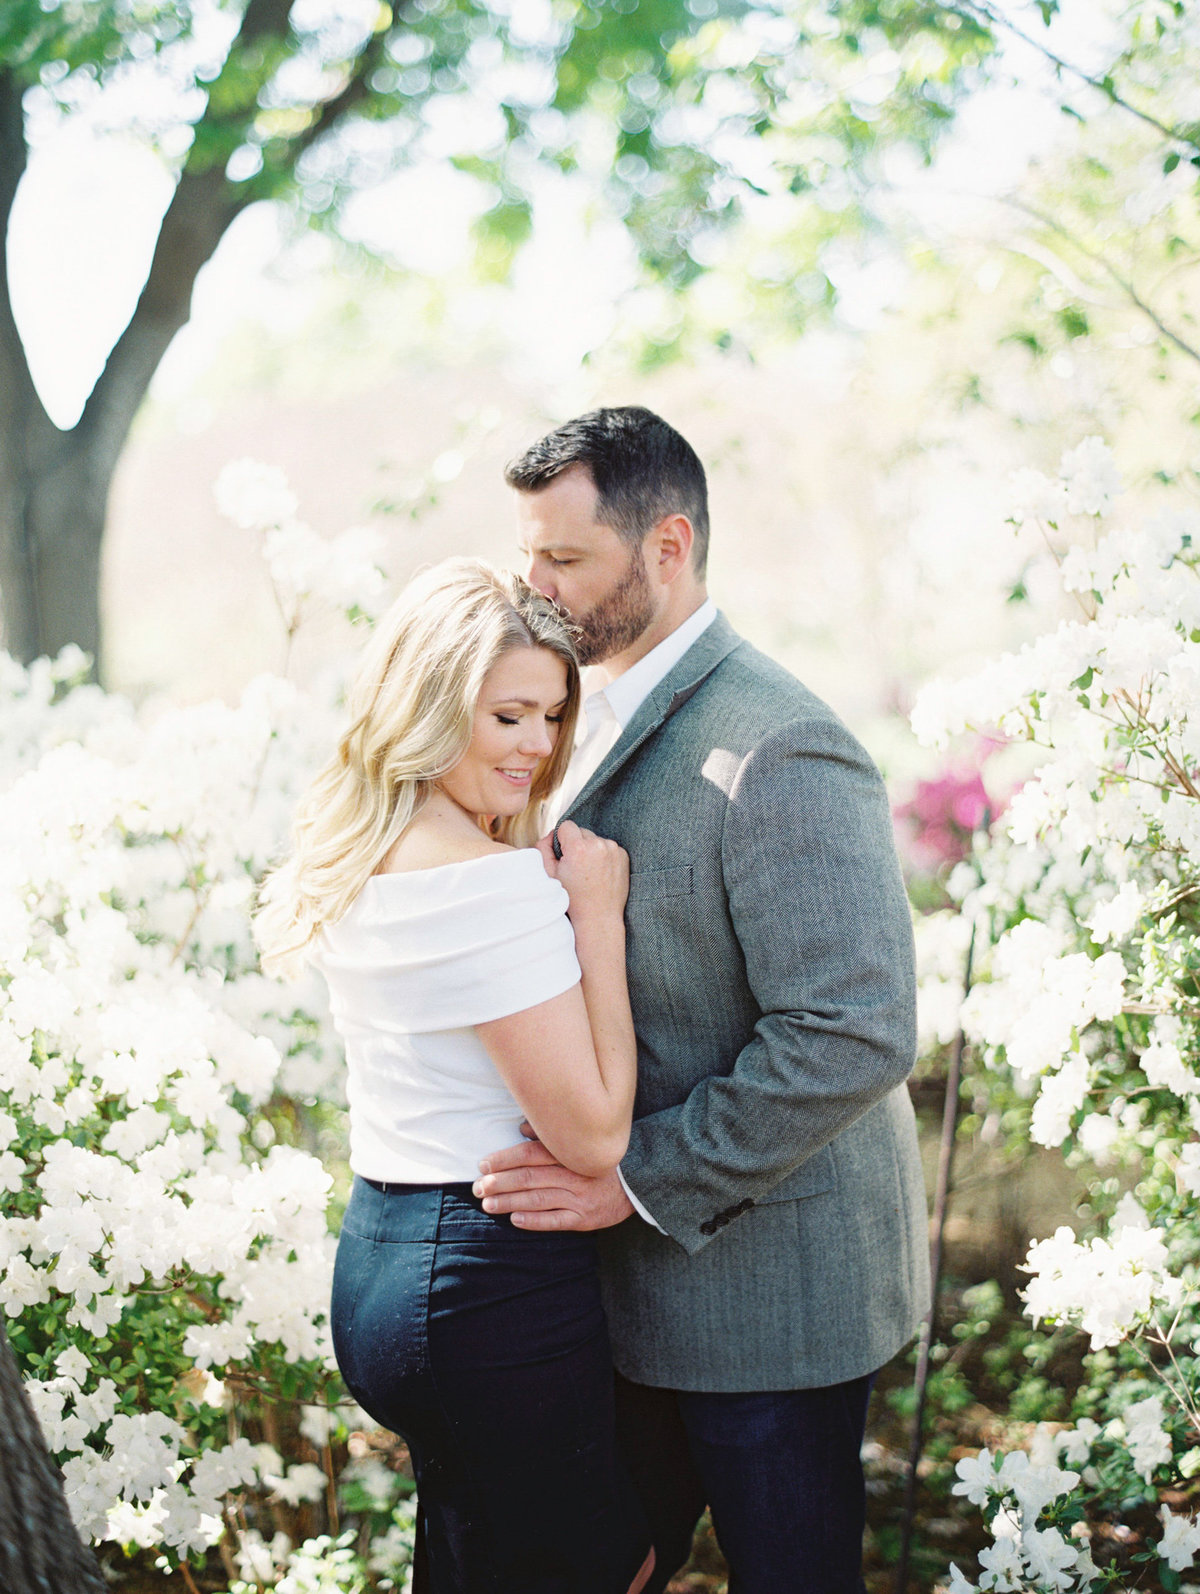 Courtney Hanson Photography - Dallas Spring Engagement Photos-009-2